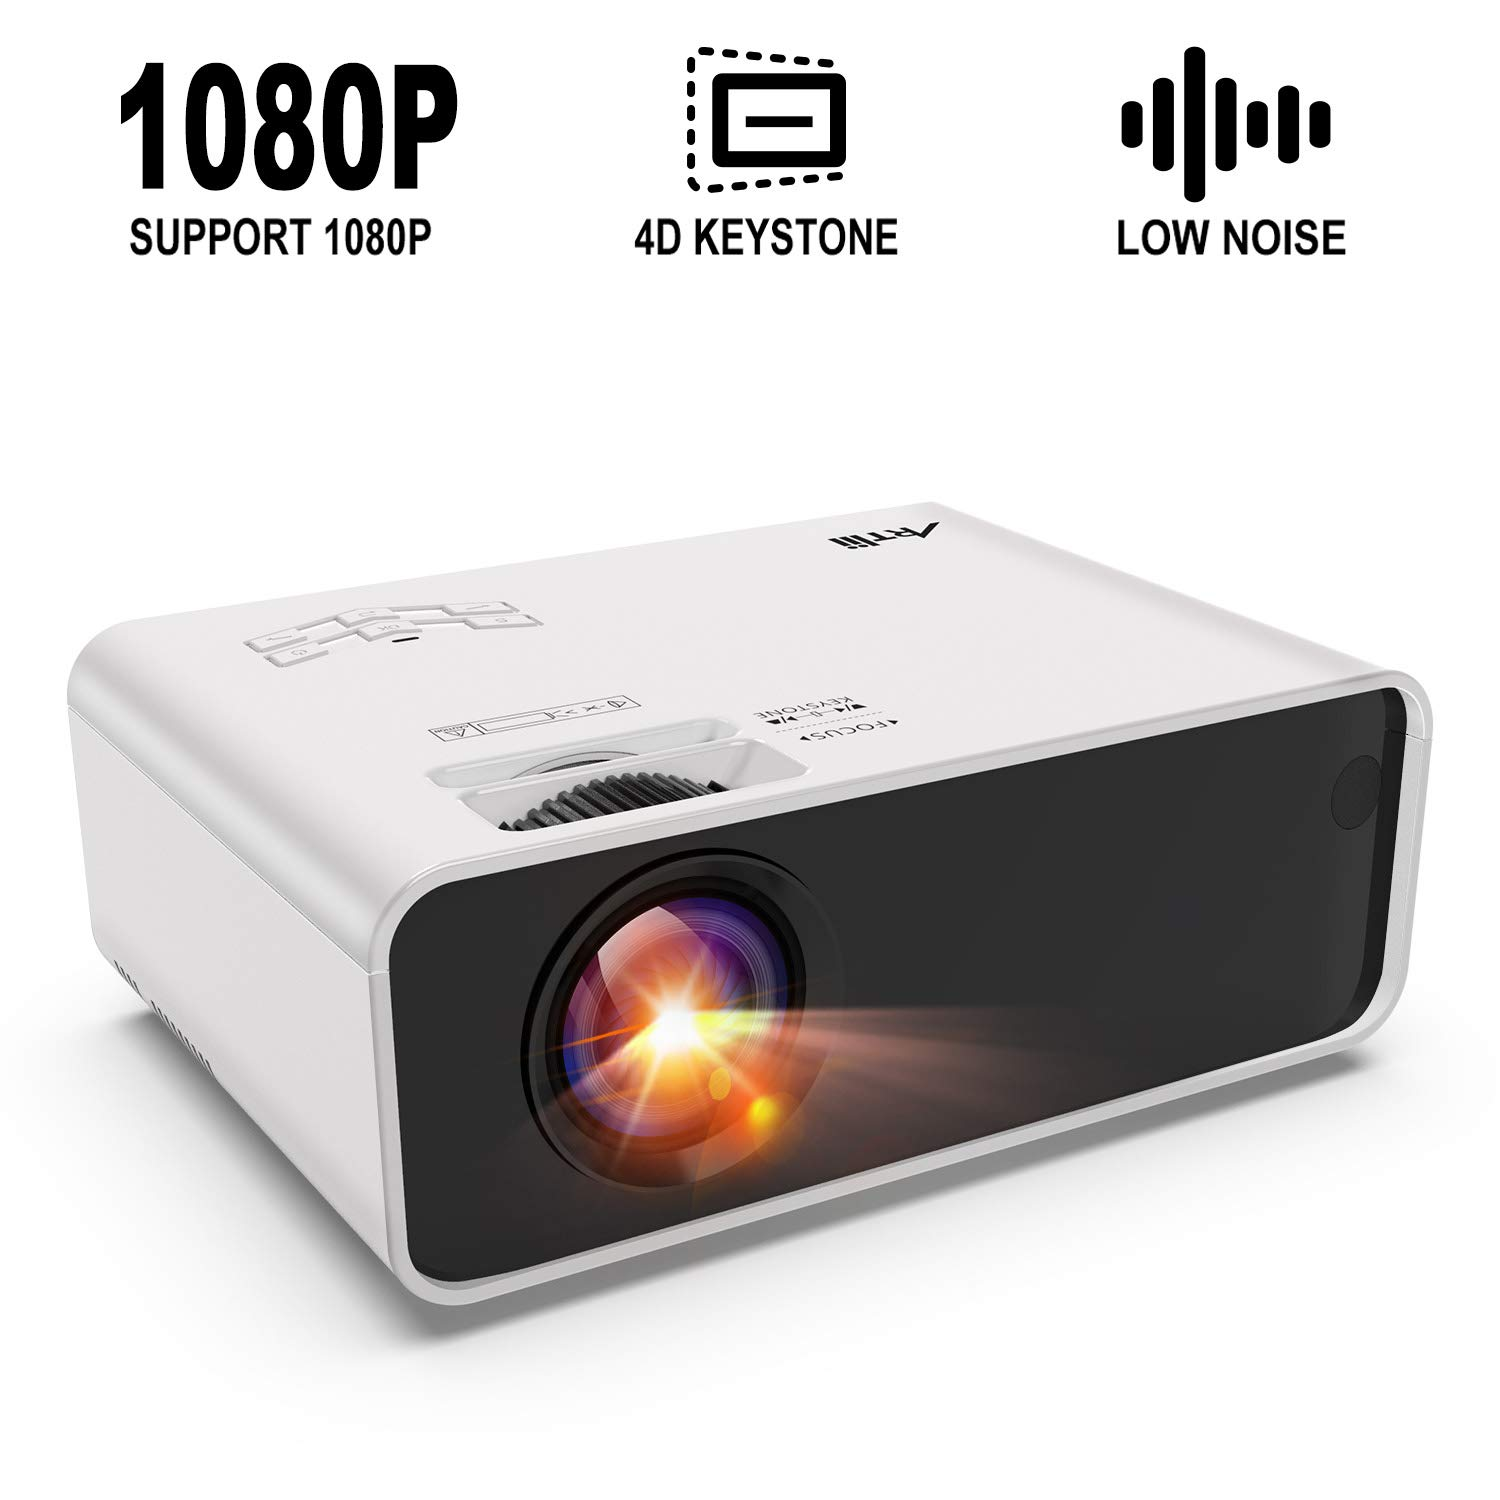 Mini Projector - Artlii Enjoy Portable Projector with ±45° Digital 4D Keystone Correction Lower Noise, HiFi Stereo,1080P Support Movie Projector Compatible Chromecast TV Phone Game Remote Learning